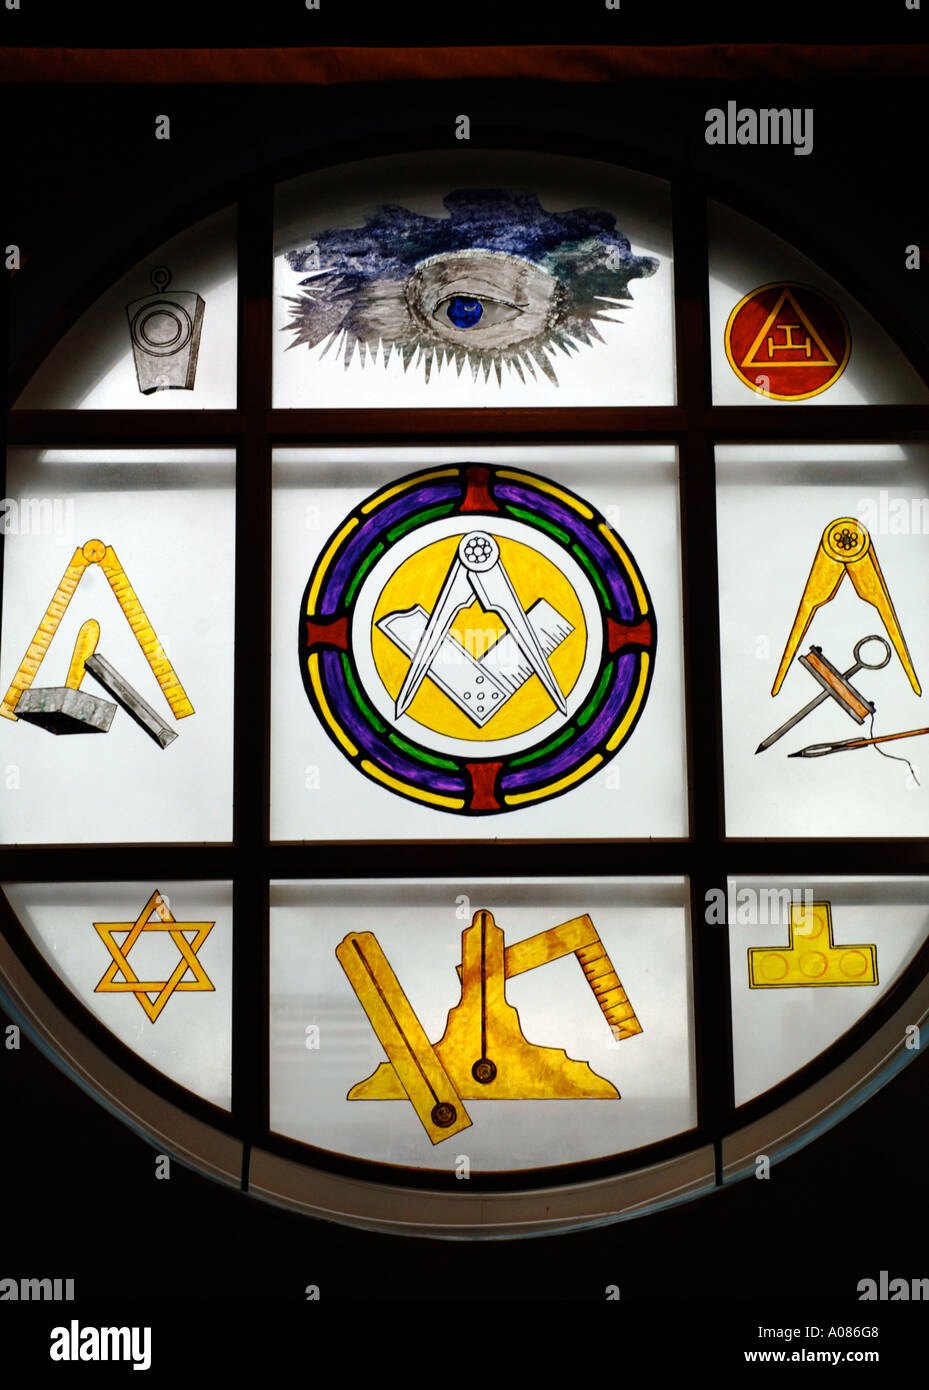 Close up of a plate glass window showing masonic symbols in a Freemasons Lodge - Stock Image